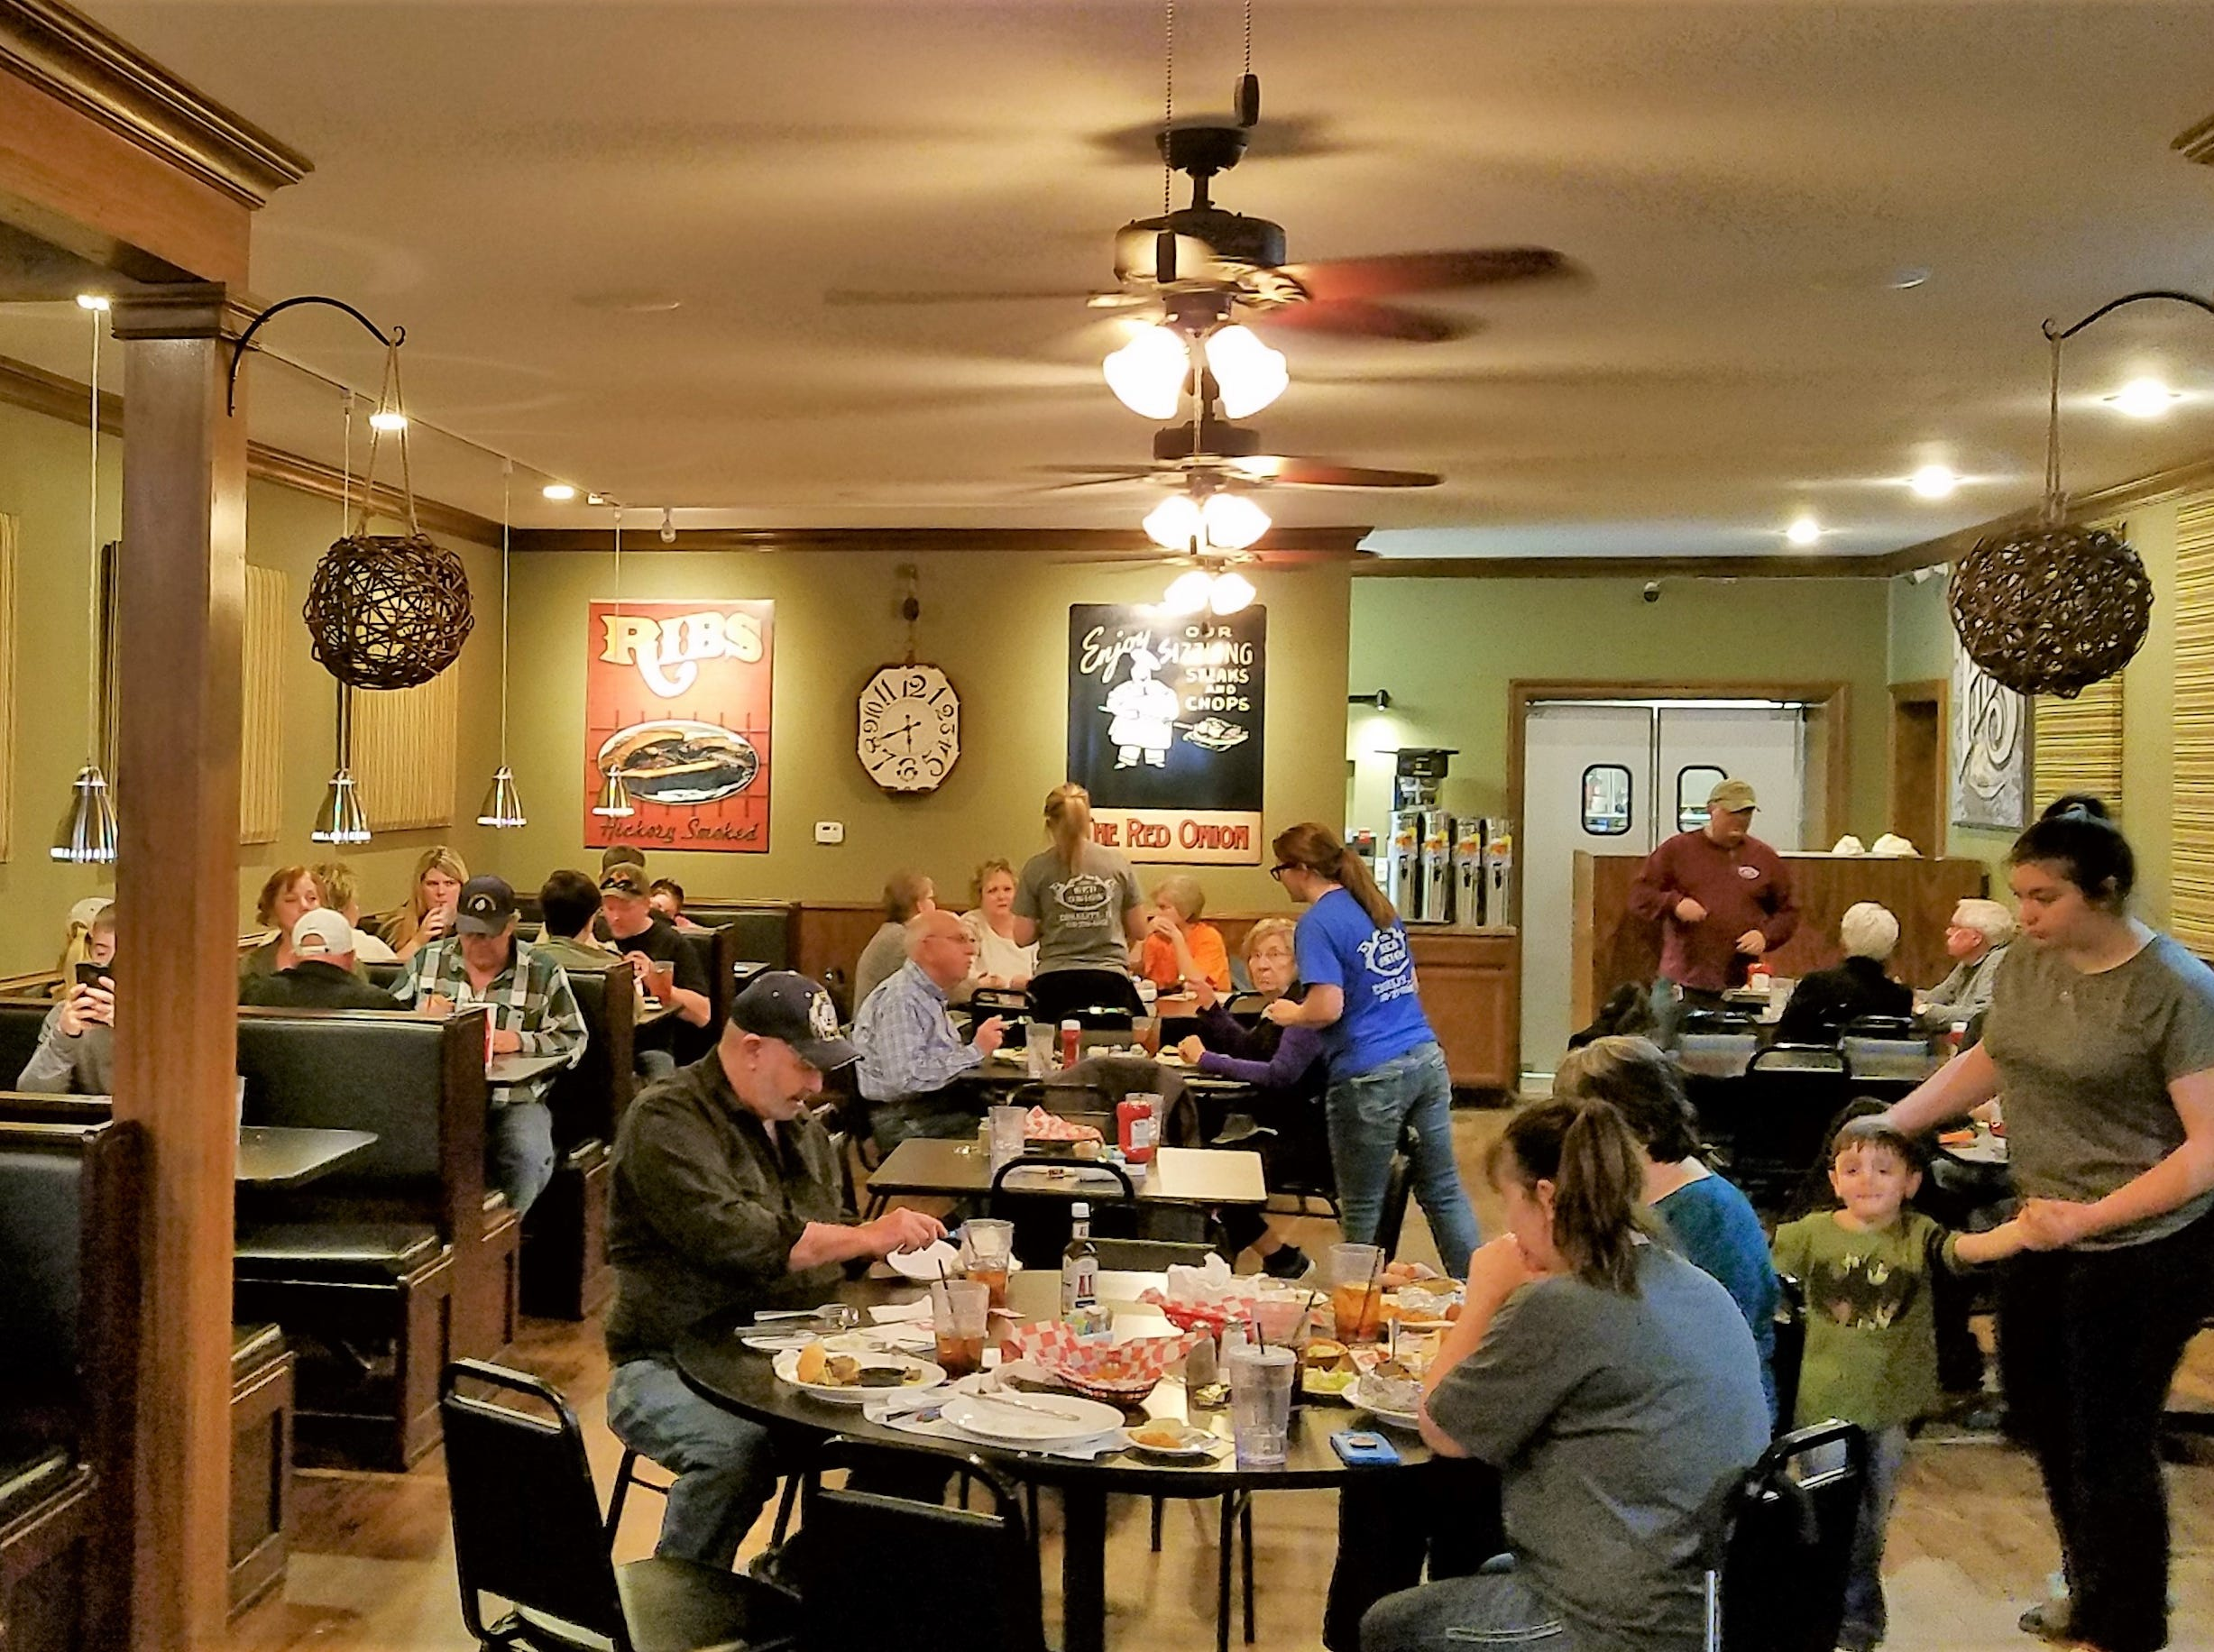 The Red Onion lies in an out-of-the-way location, but the dining room stays full of folks from surrounding towns in Kentucky, Illinois and Indiana.